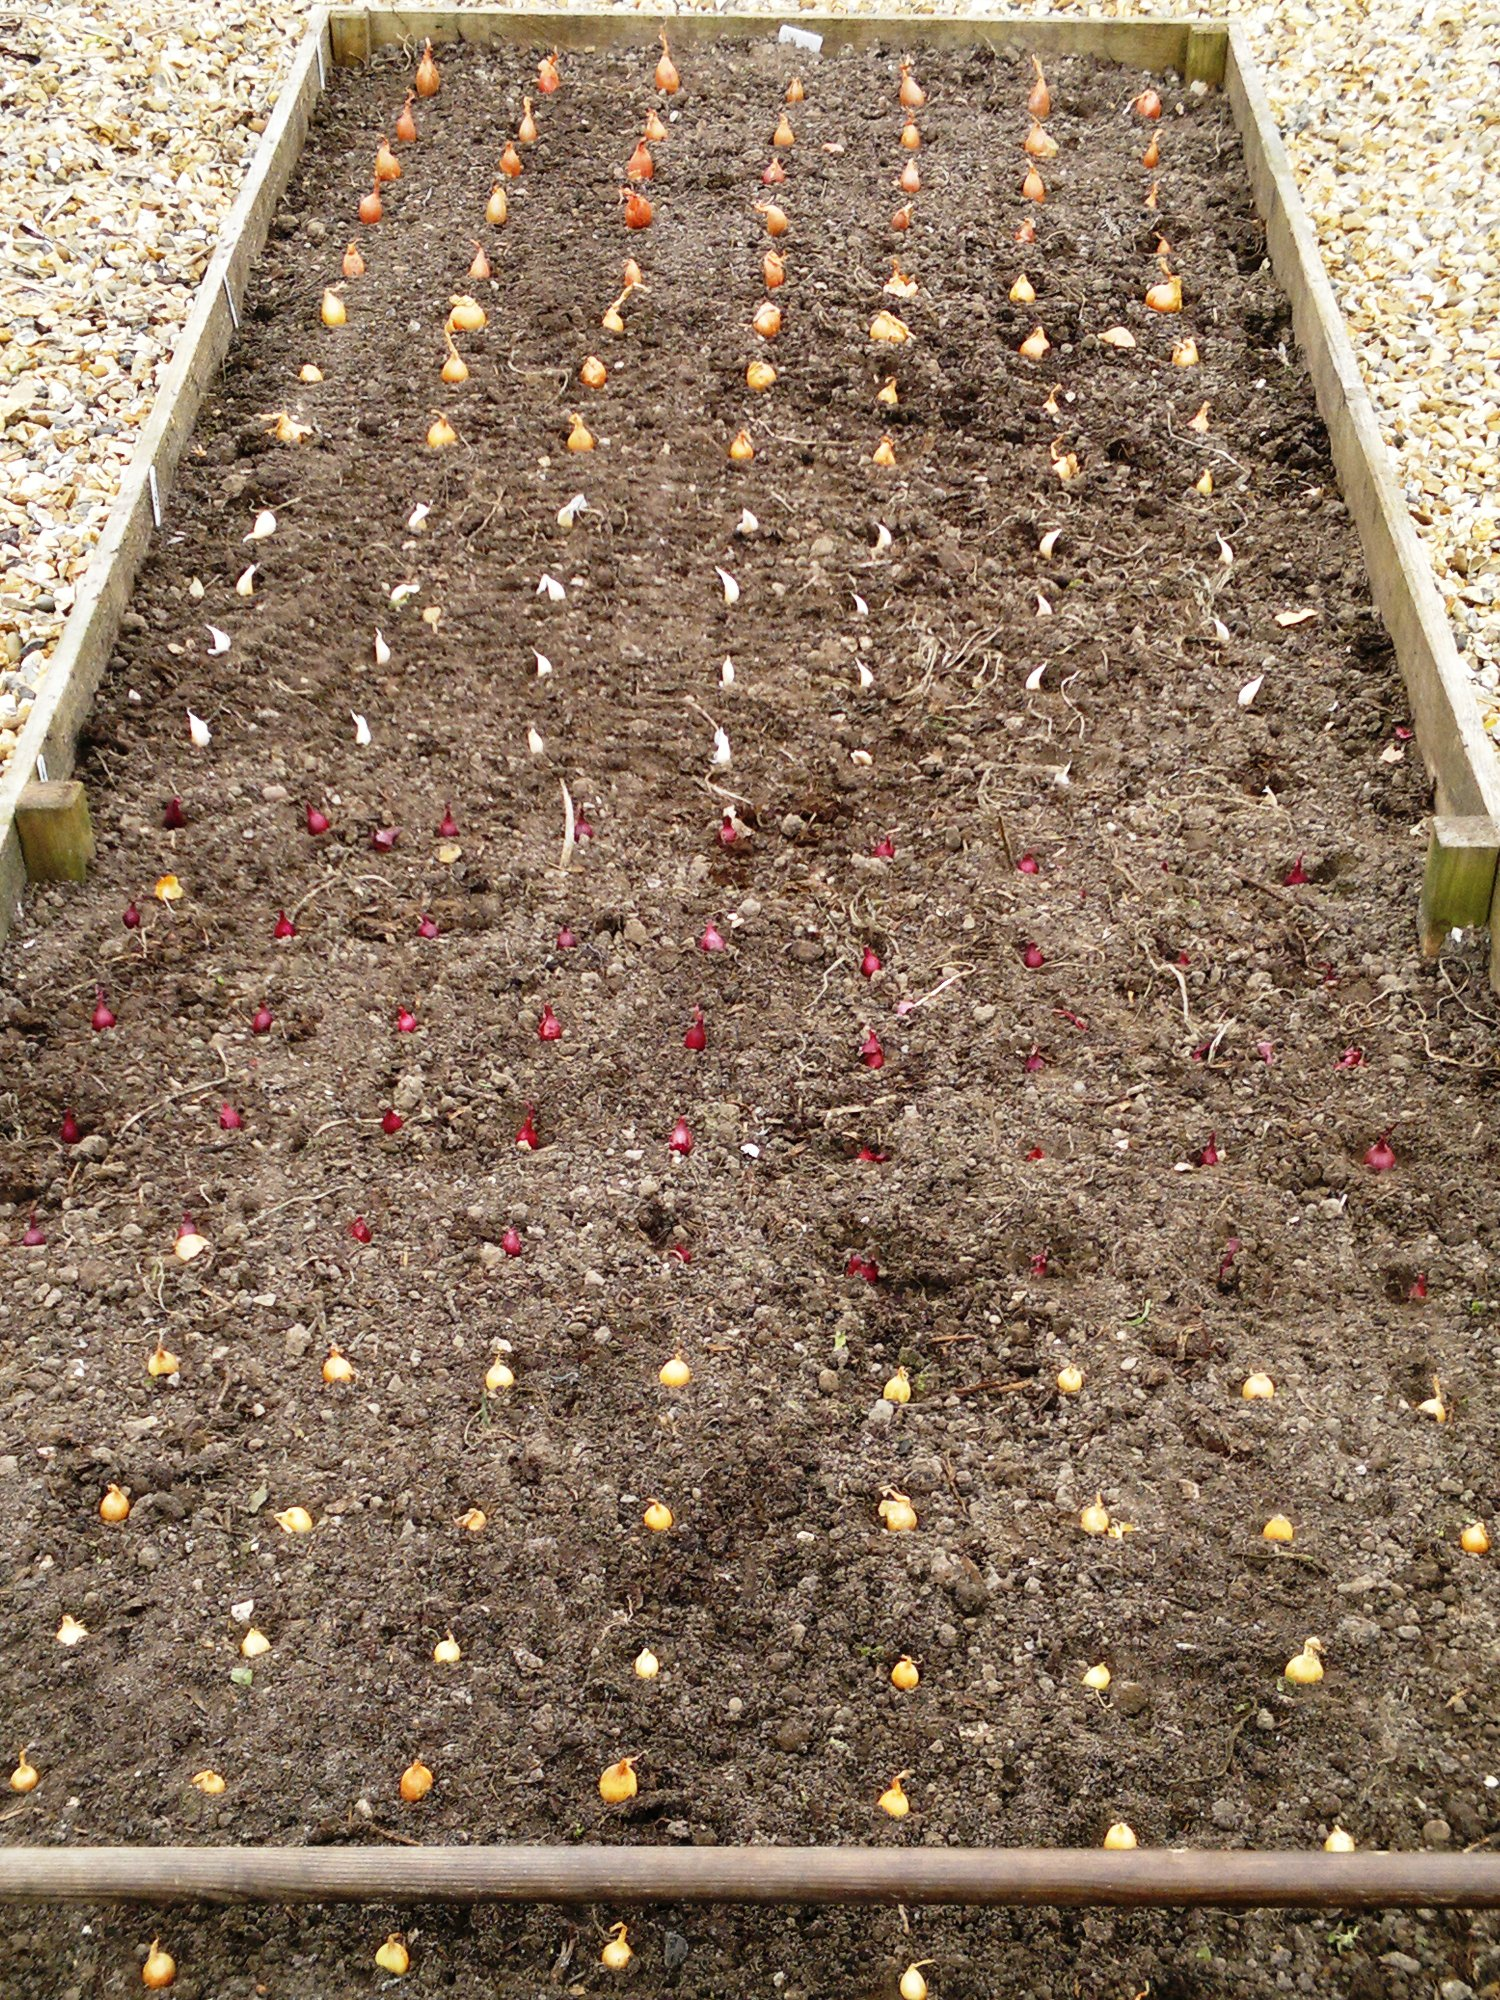 Onions, shallots, and garlic laid out for planting